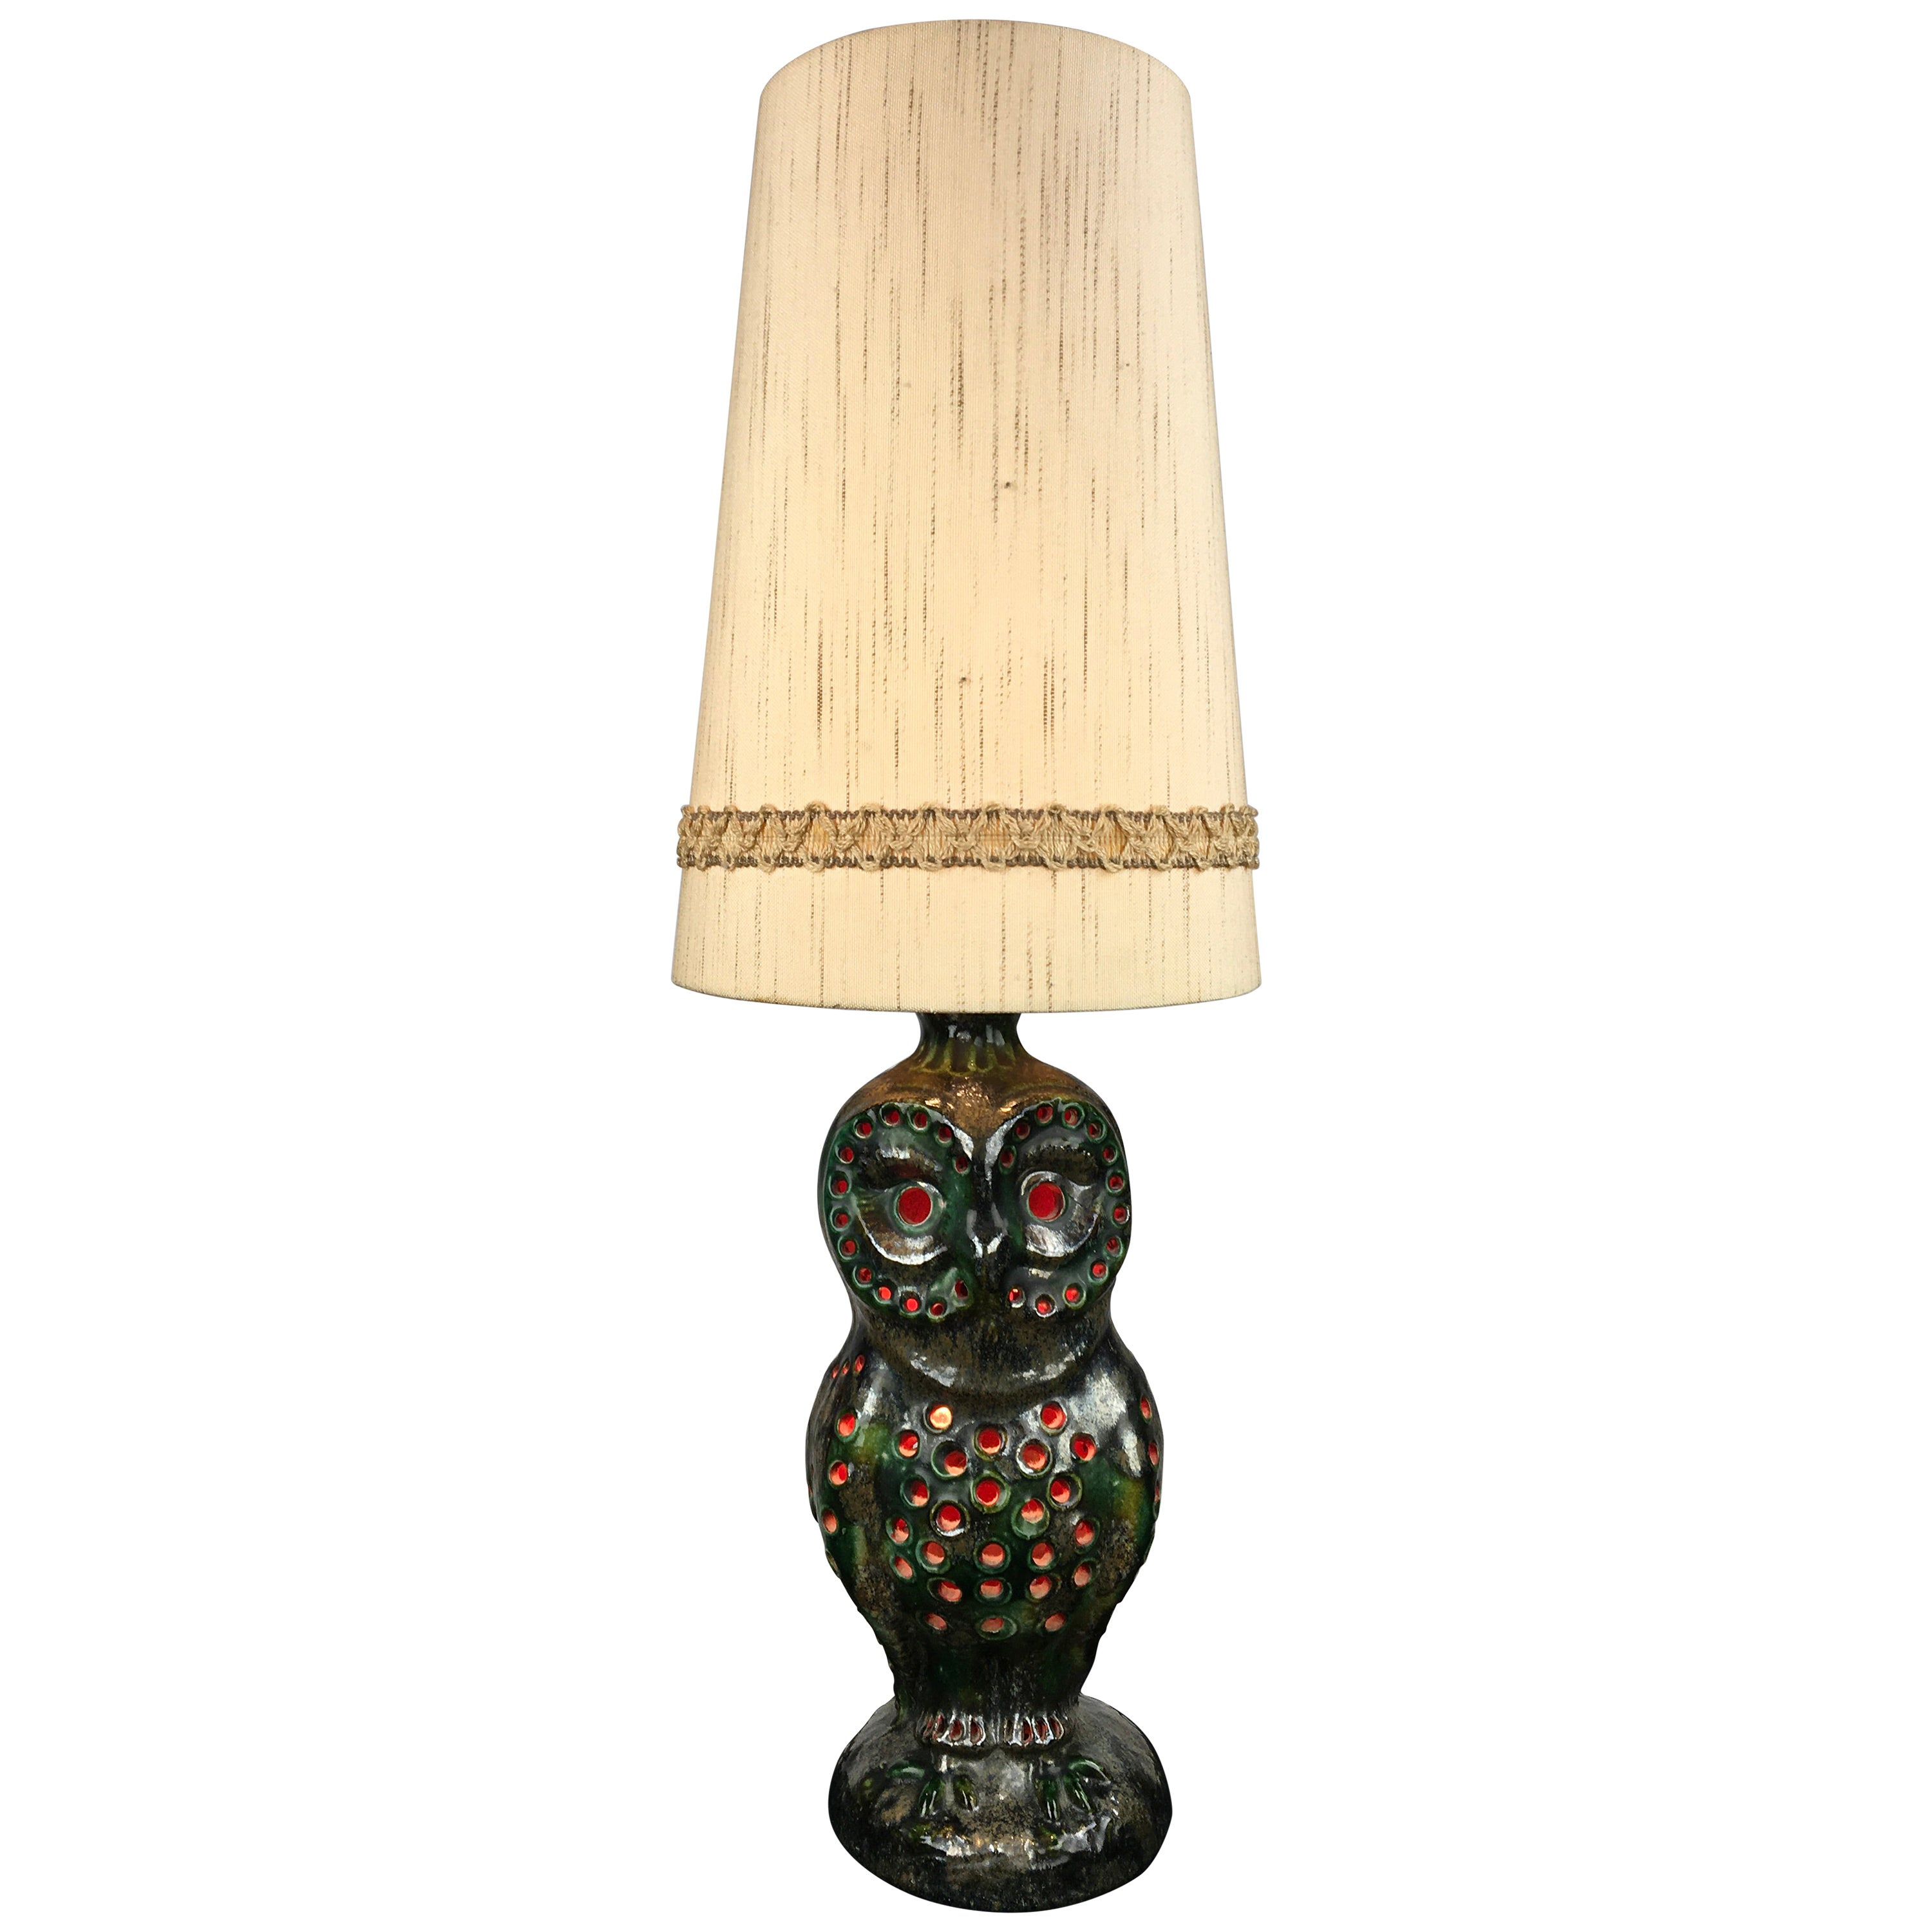 Ceramic Owl Table Lamp with Original Shade, Germany, 1970s